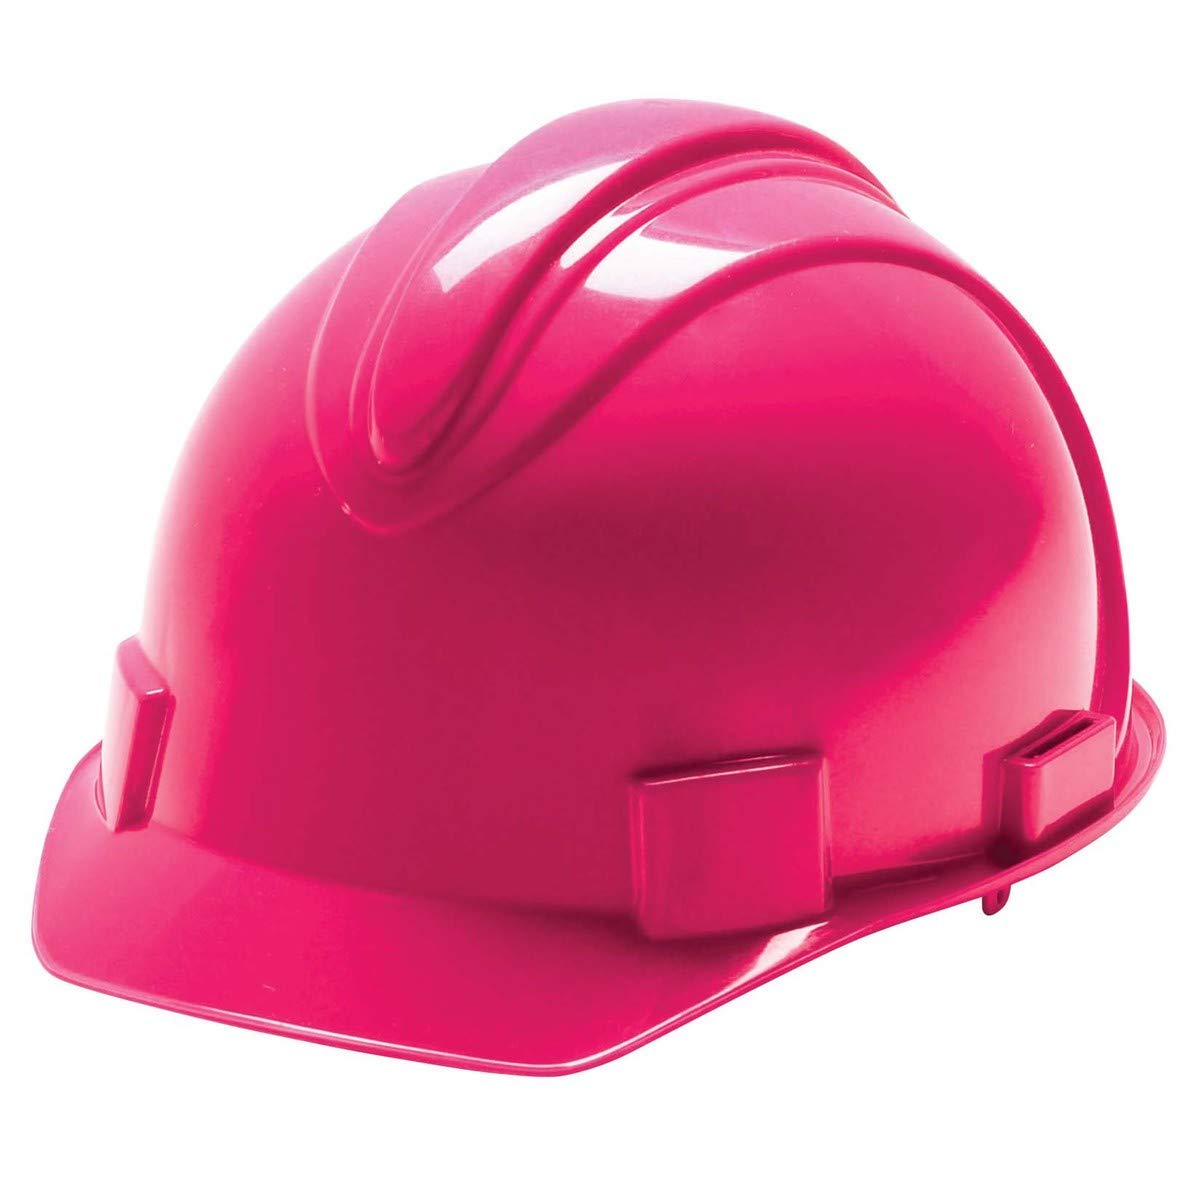 8c28fd8659e Get Quotations · Kimberly-Clark Professional Pink Jackson Safety Charger HDPE  Cap Style Slotted Hard Hat With 4